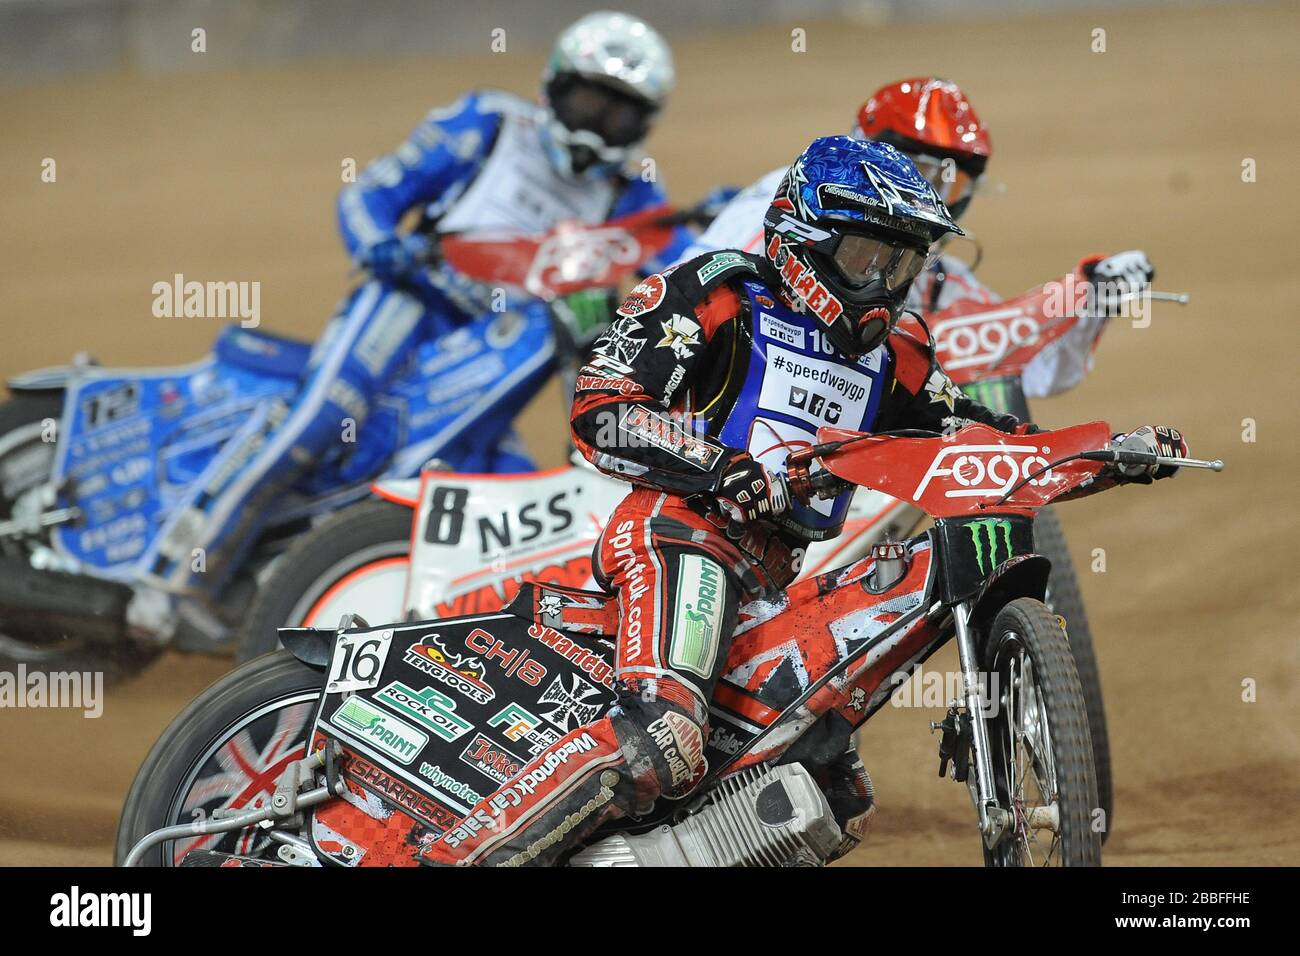 Chris harris speedway gp betting mantes vs nantes betting experts